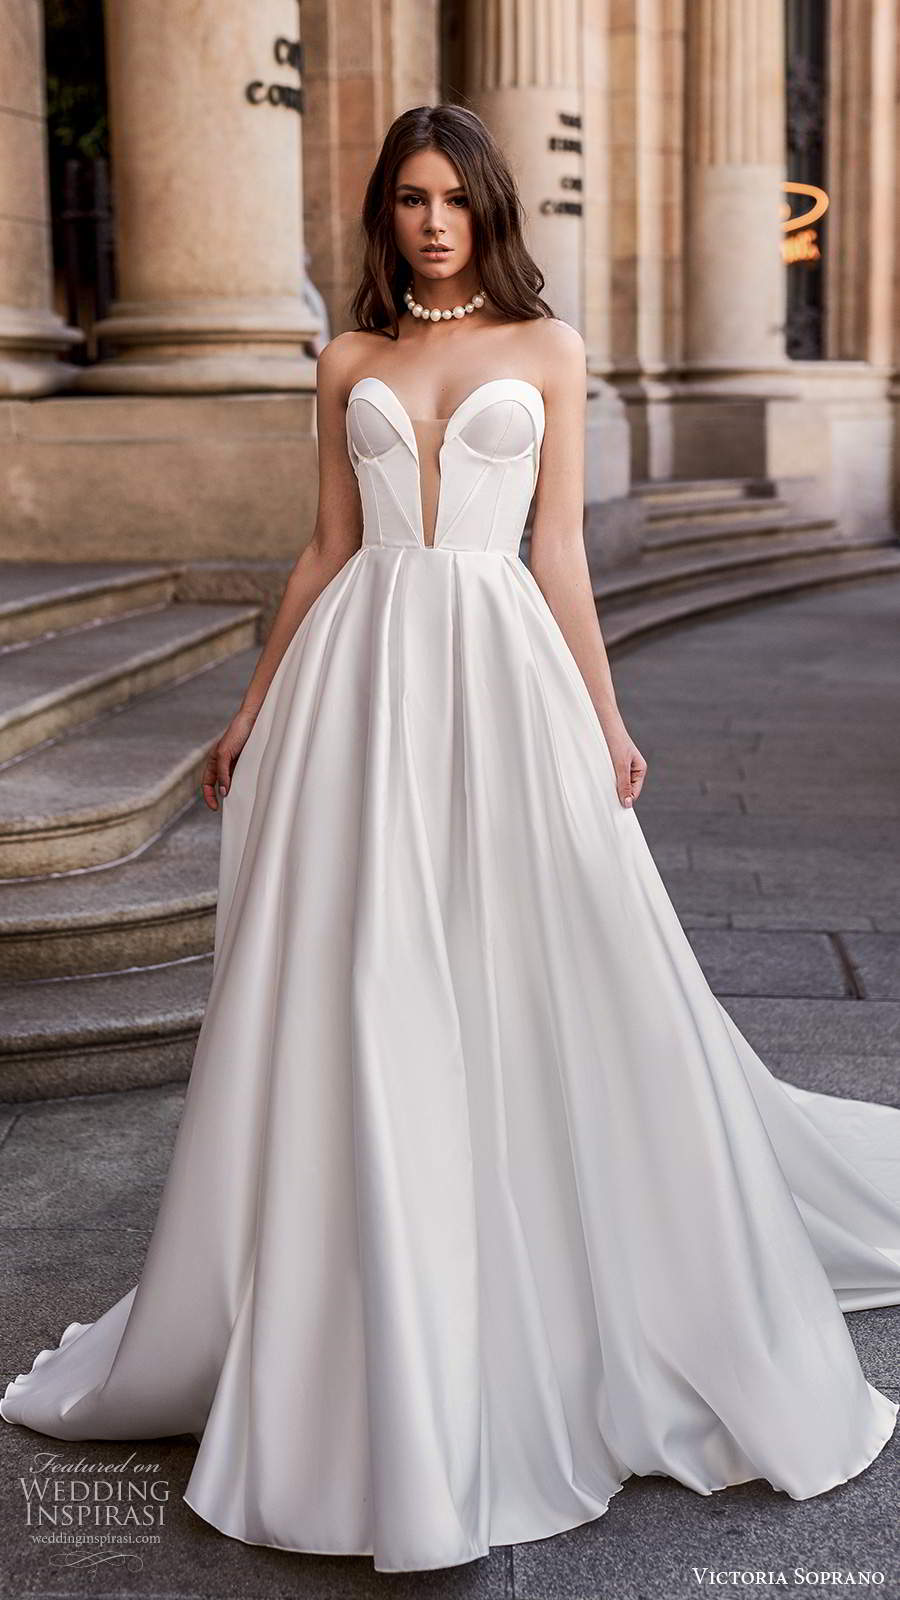 Your Guide To 2020 S Hottest Wedding Dress Trends Part 2 Necklines And Backs Wedding Inspirasi